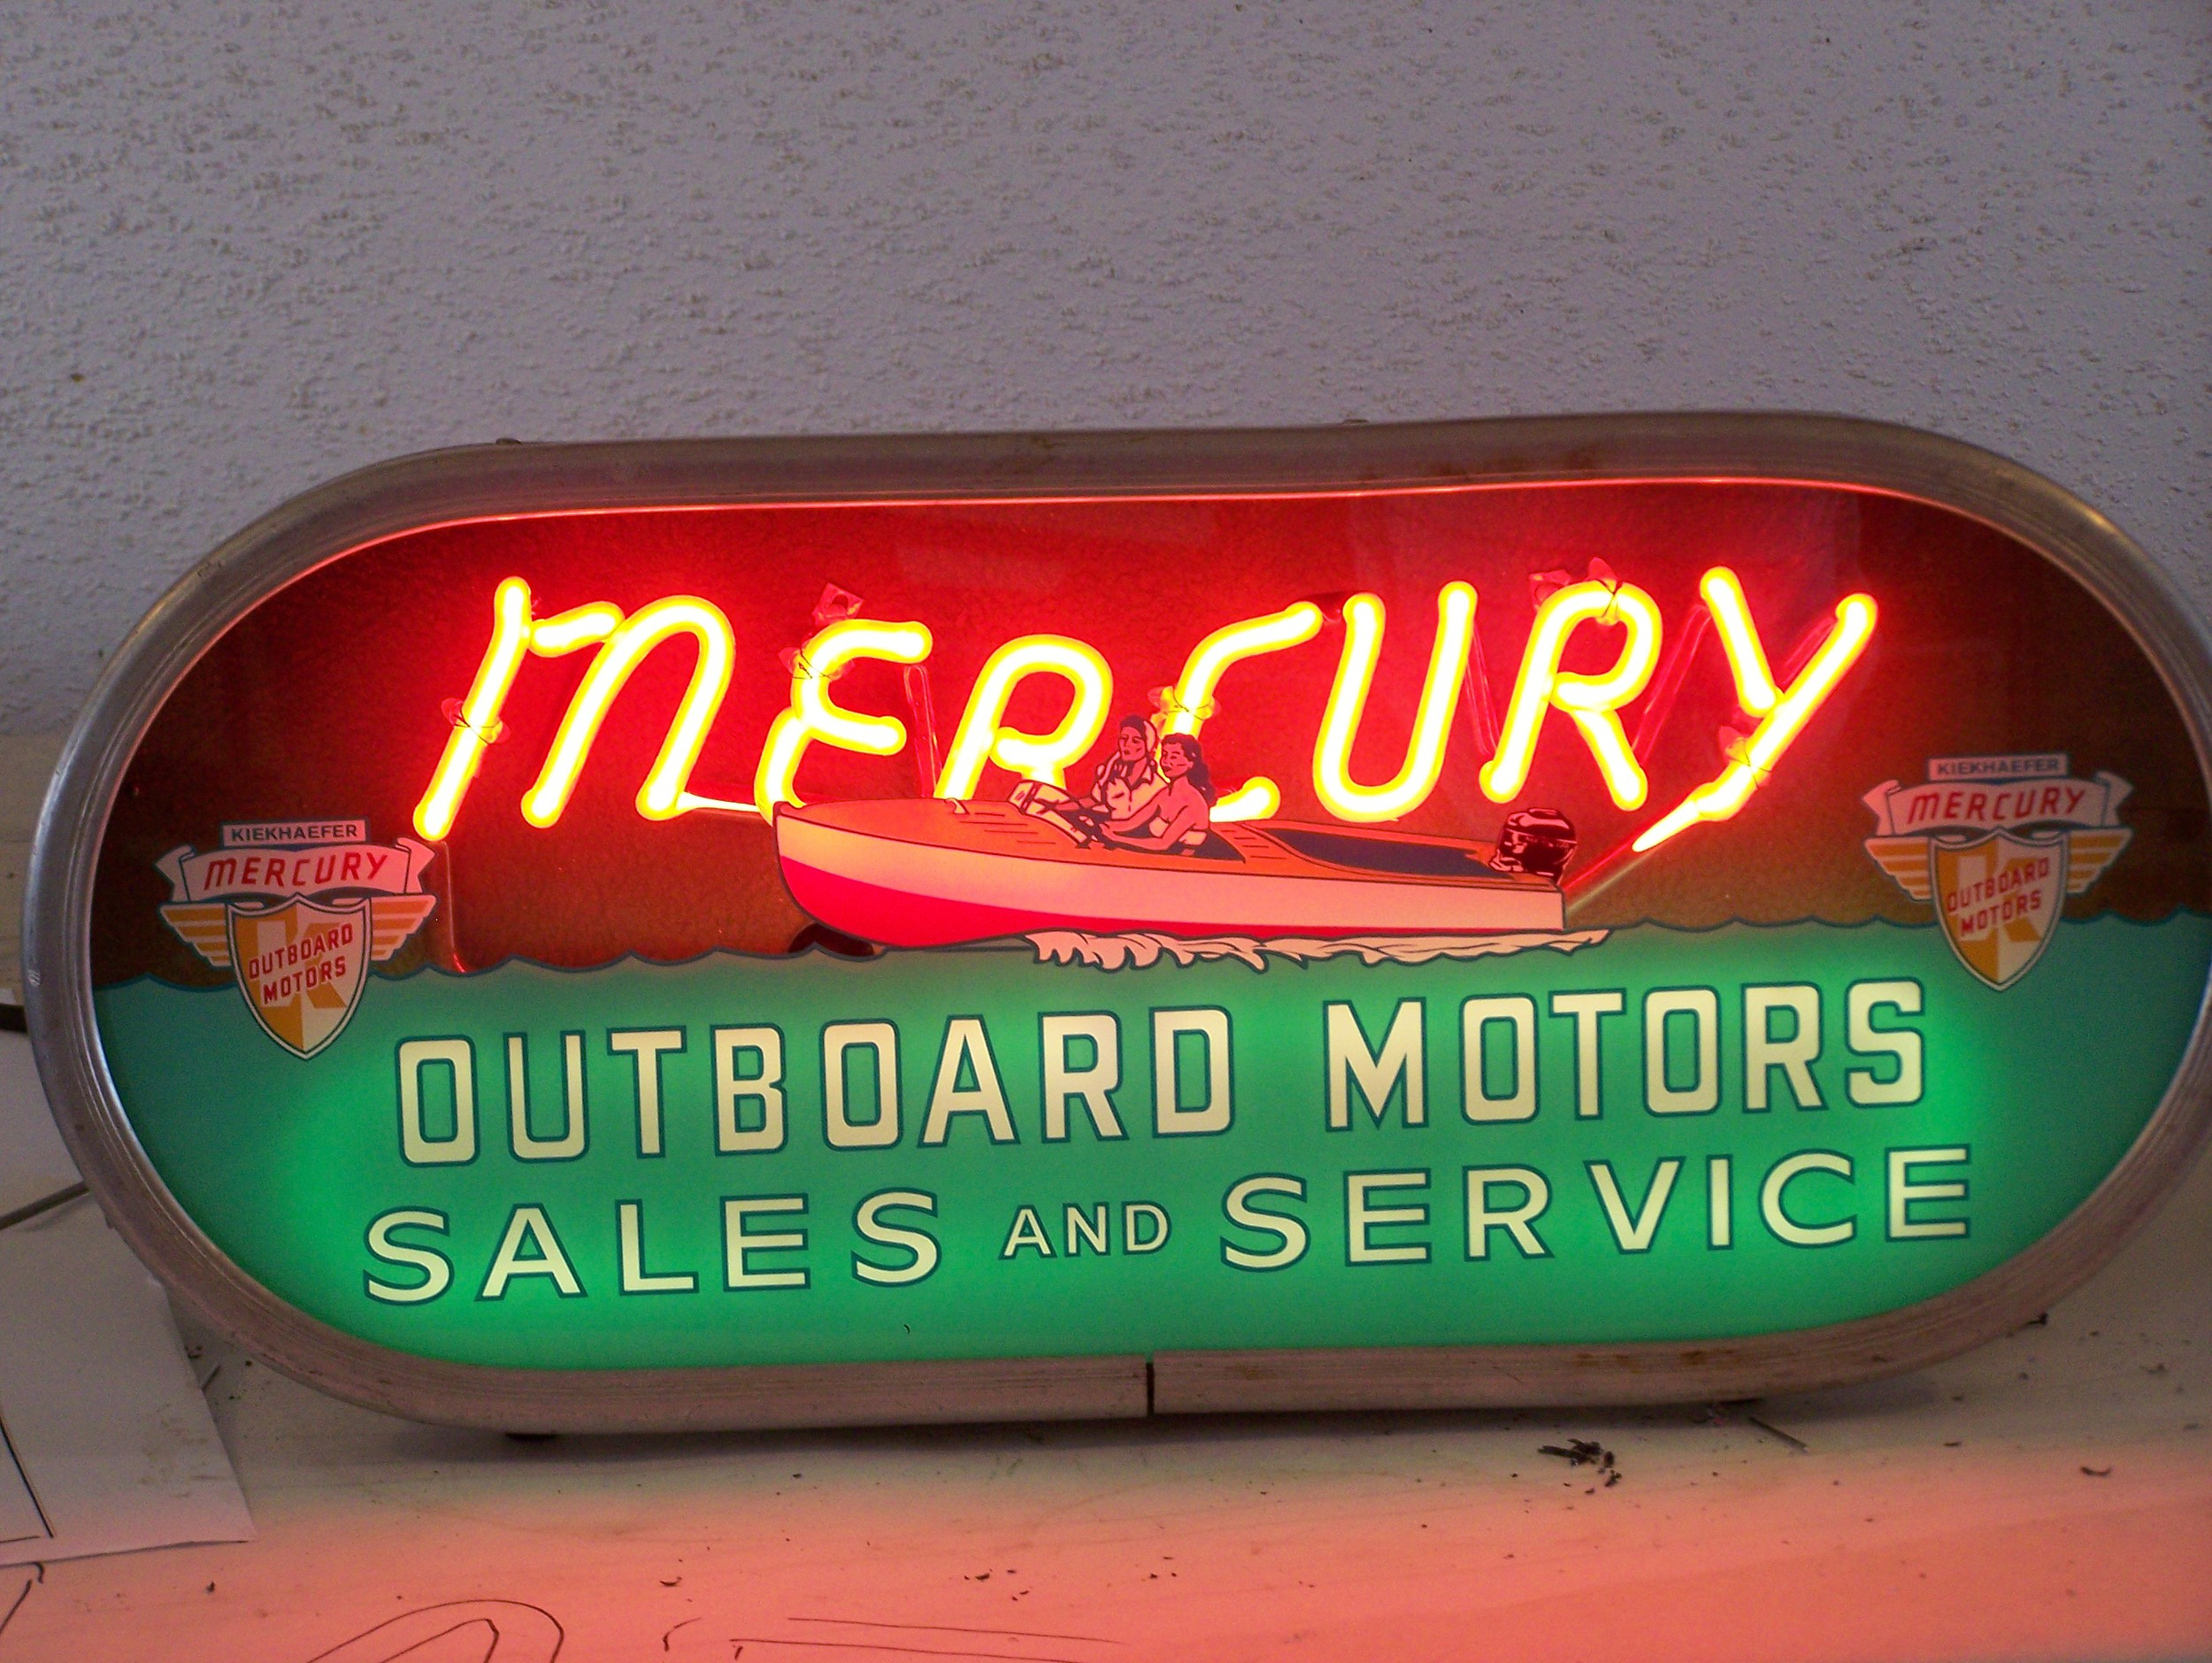 Mercury Outboard Motors - Neon & Reverse Glass Graphics